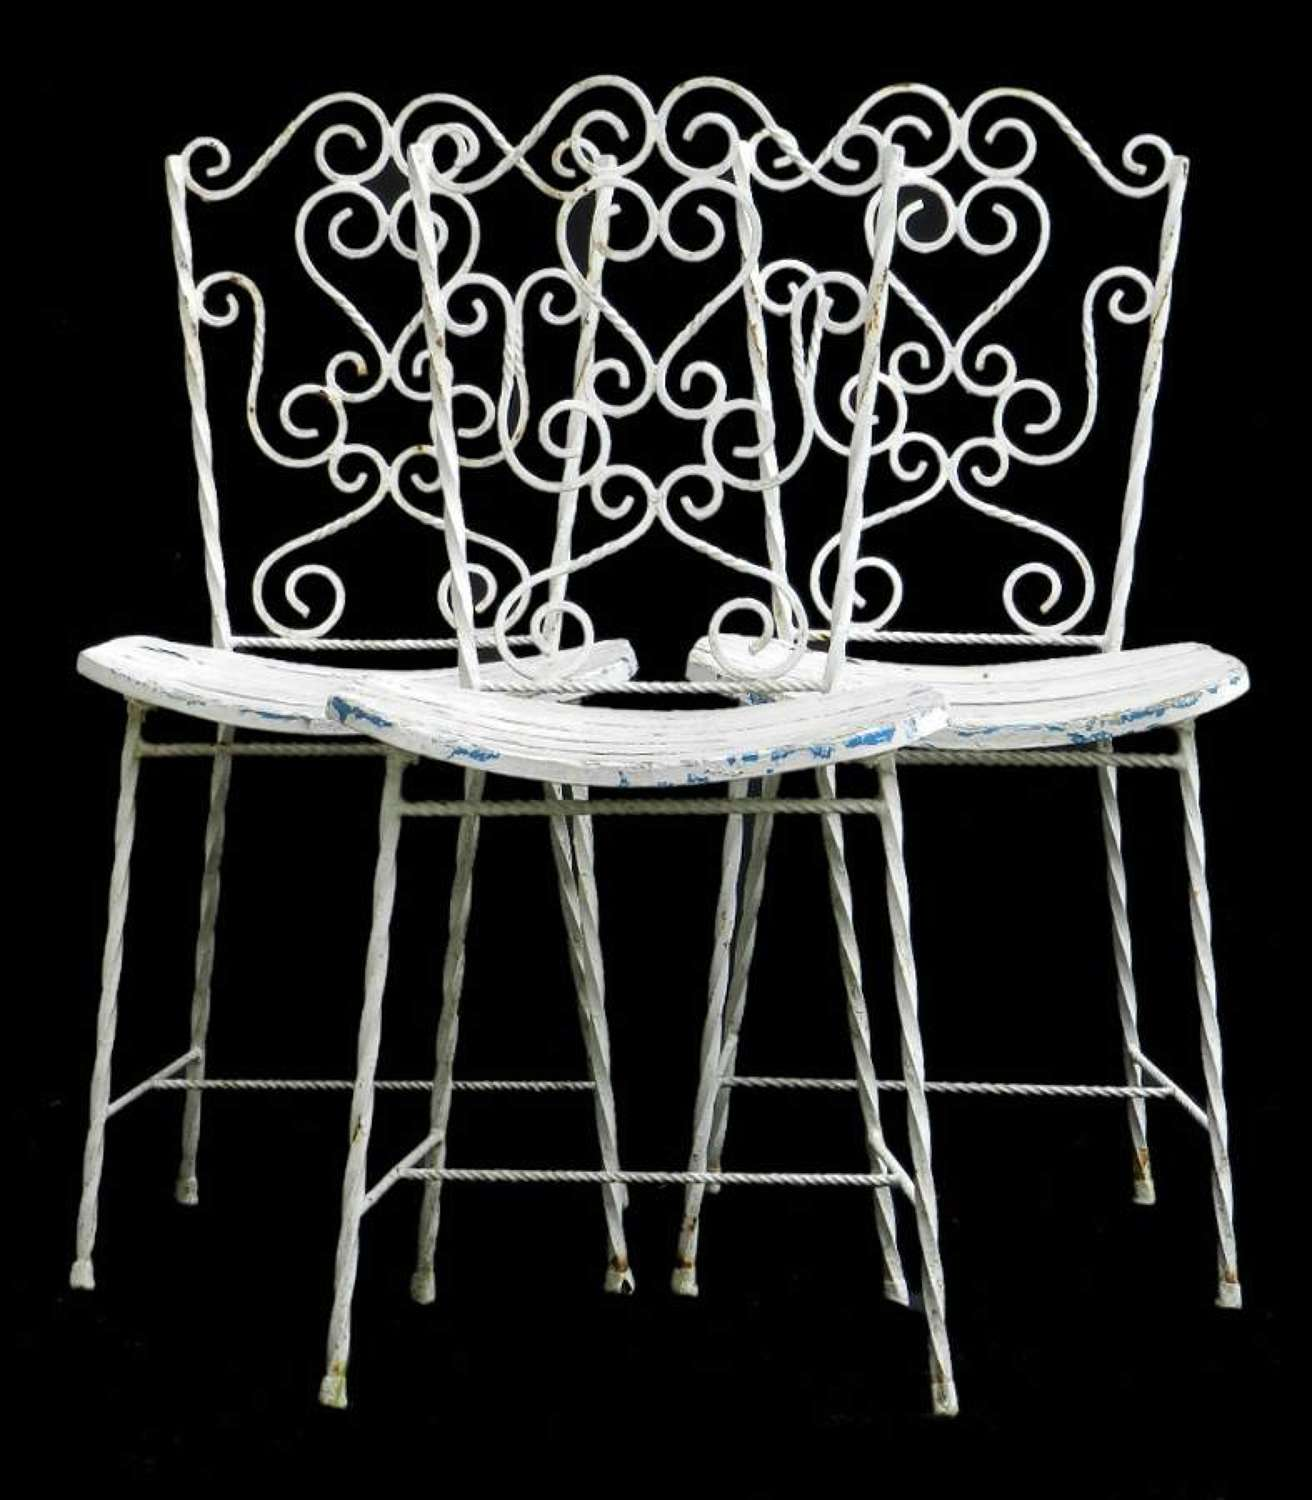 3 French Garden Chairs Iron early C20